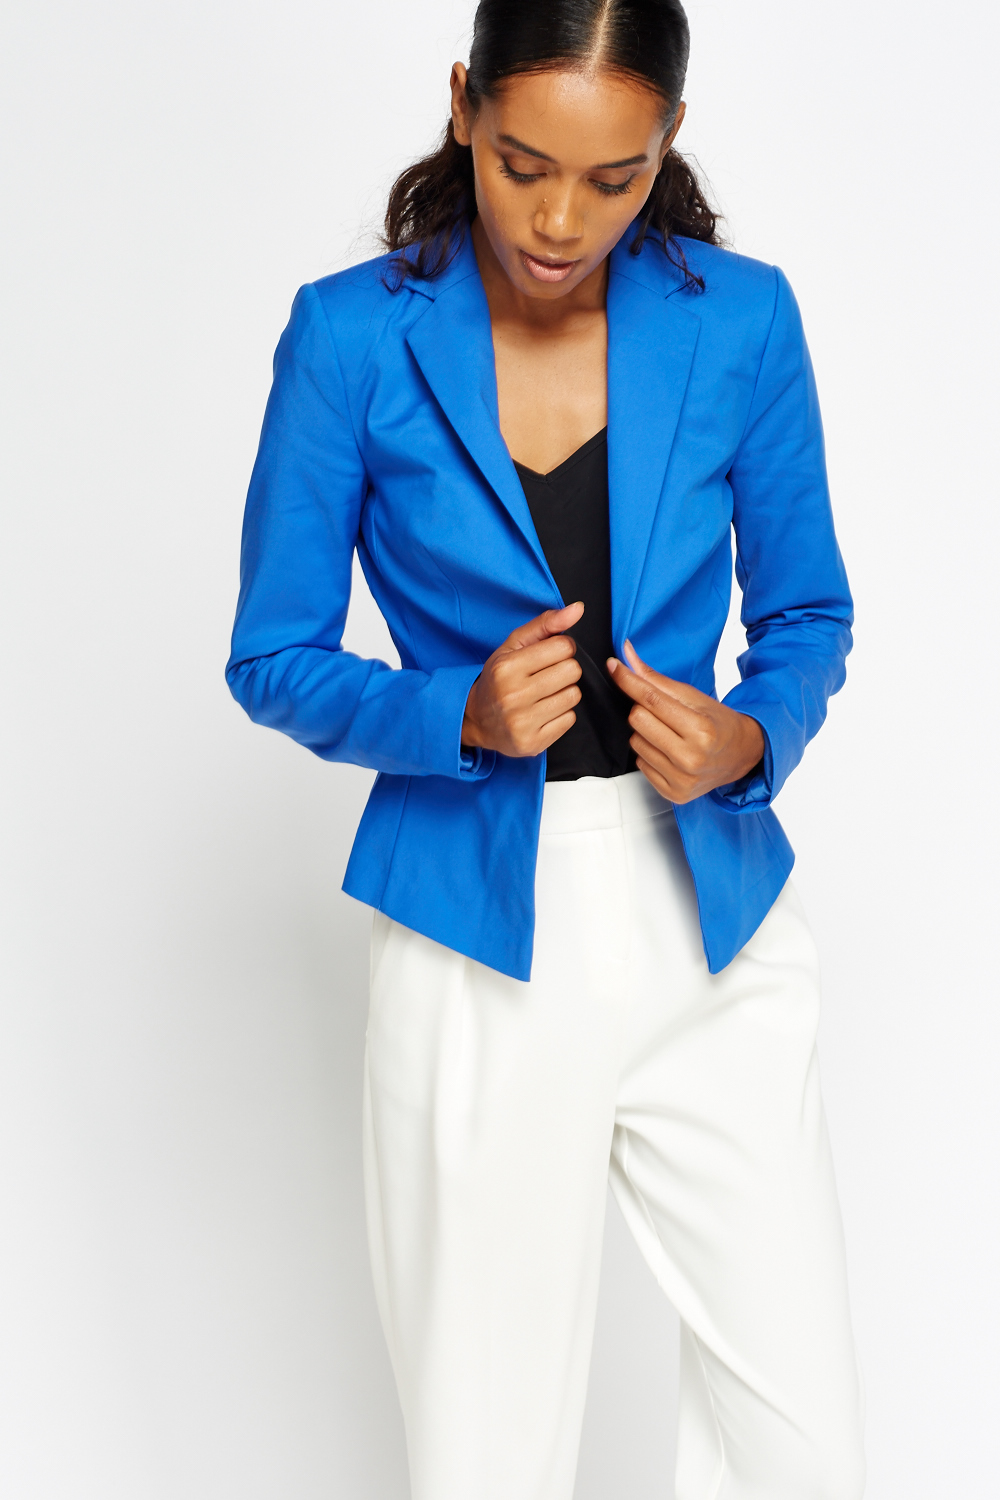 Blazers | Buy cheap Blazers for just £5 on Everything5pounds.com